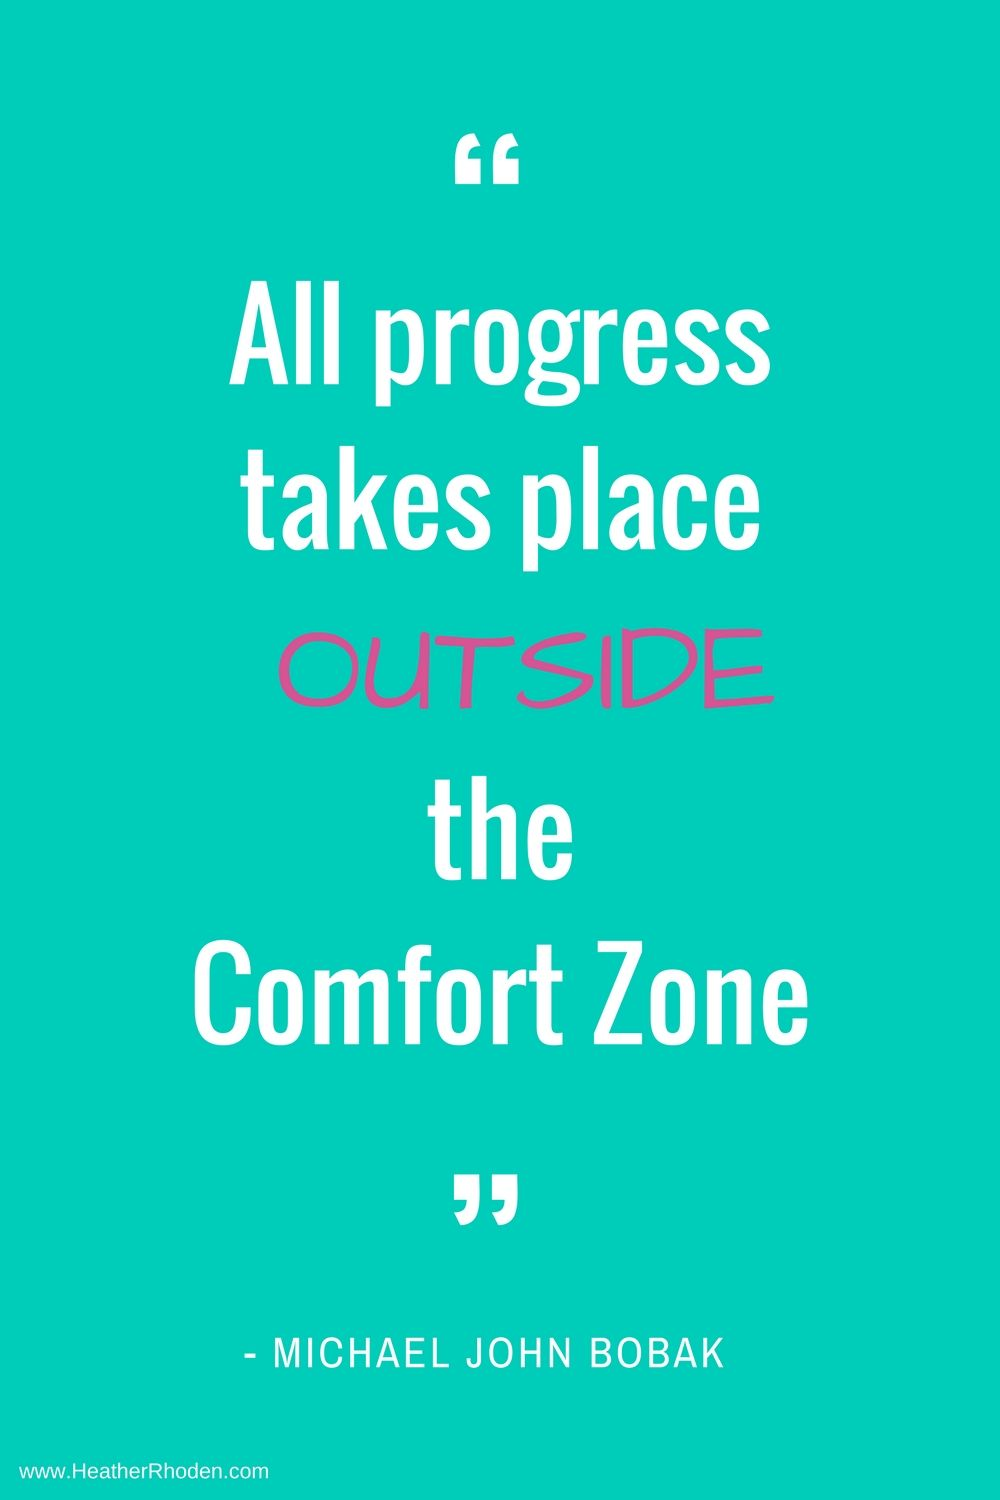 Great Motivating Quote With A Tip To Step Outside Your Comfort Zone Today That S Where Great Things Happen Comfortzon Motivational Quotes Quotes Good Advice